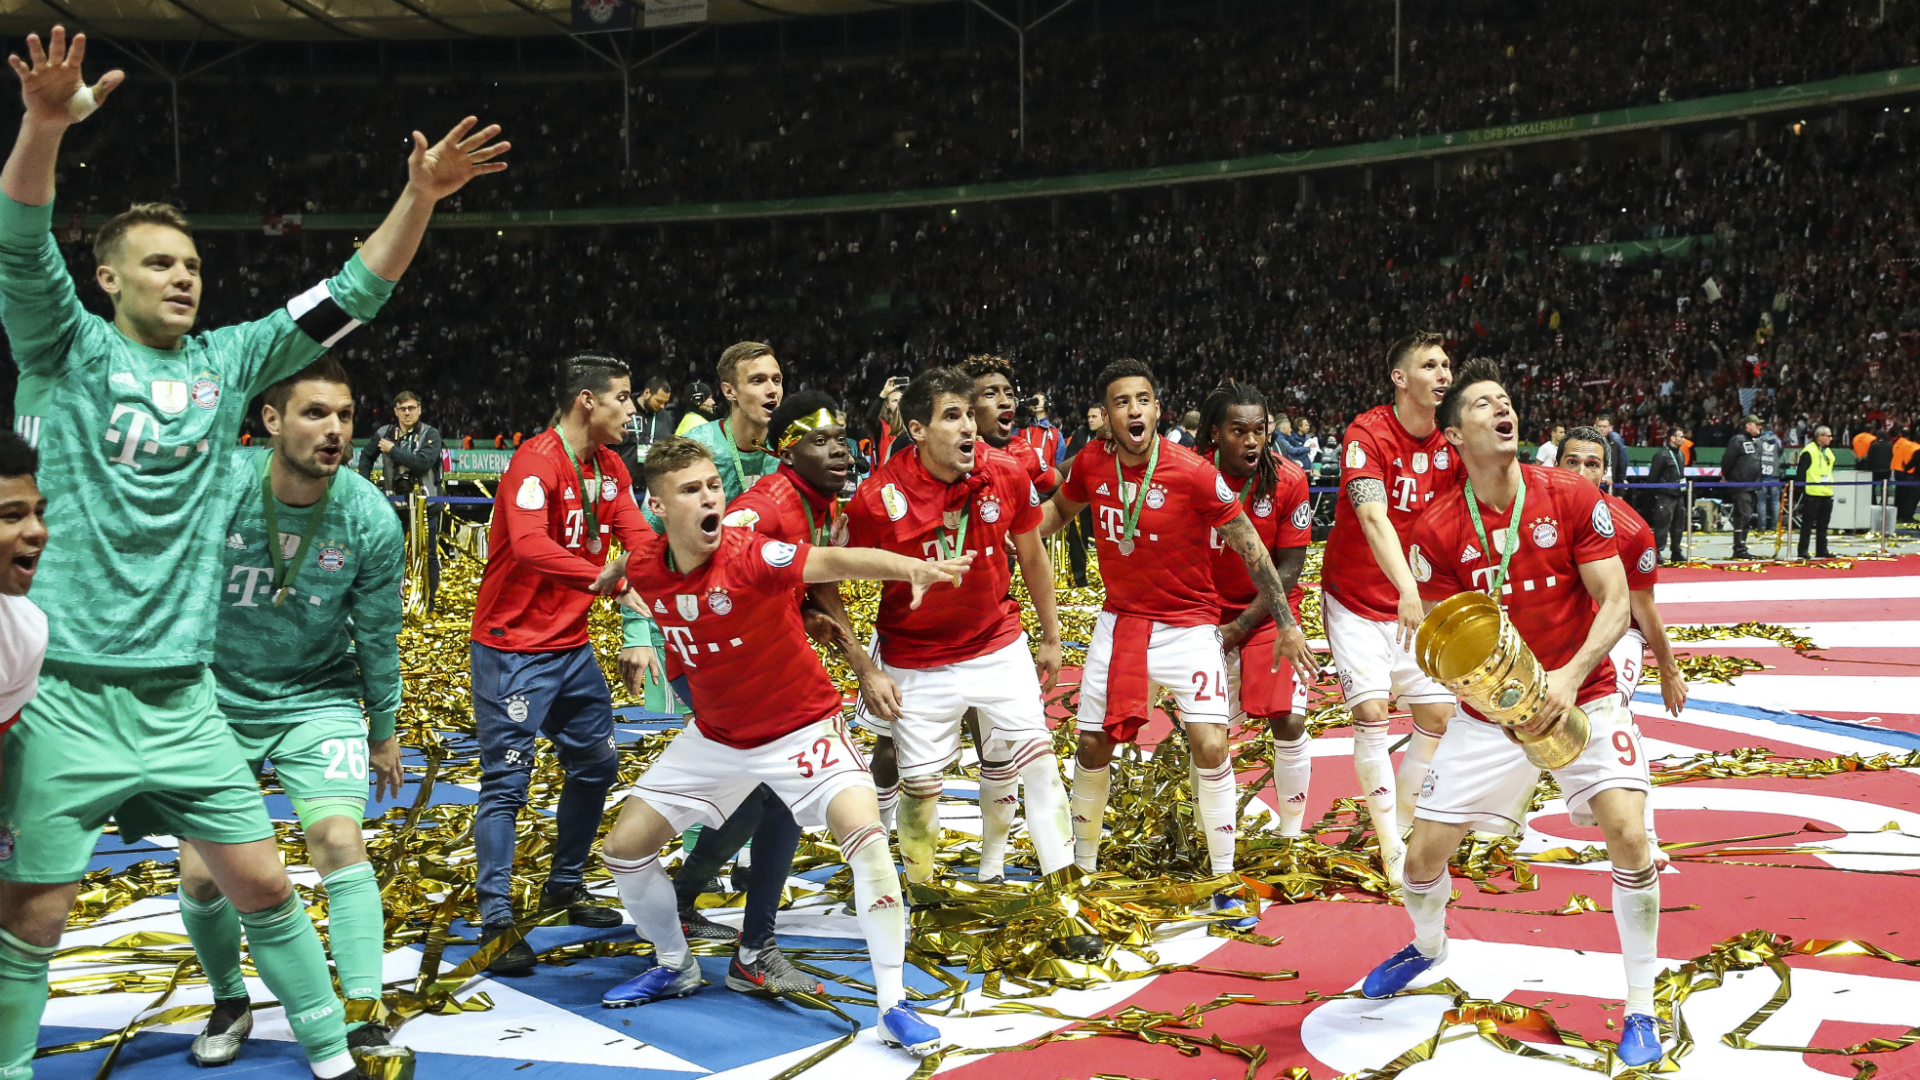 Coronavirus: Bayern's Pokal semi-final postponed